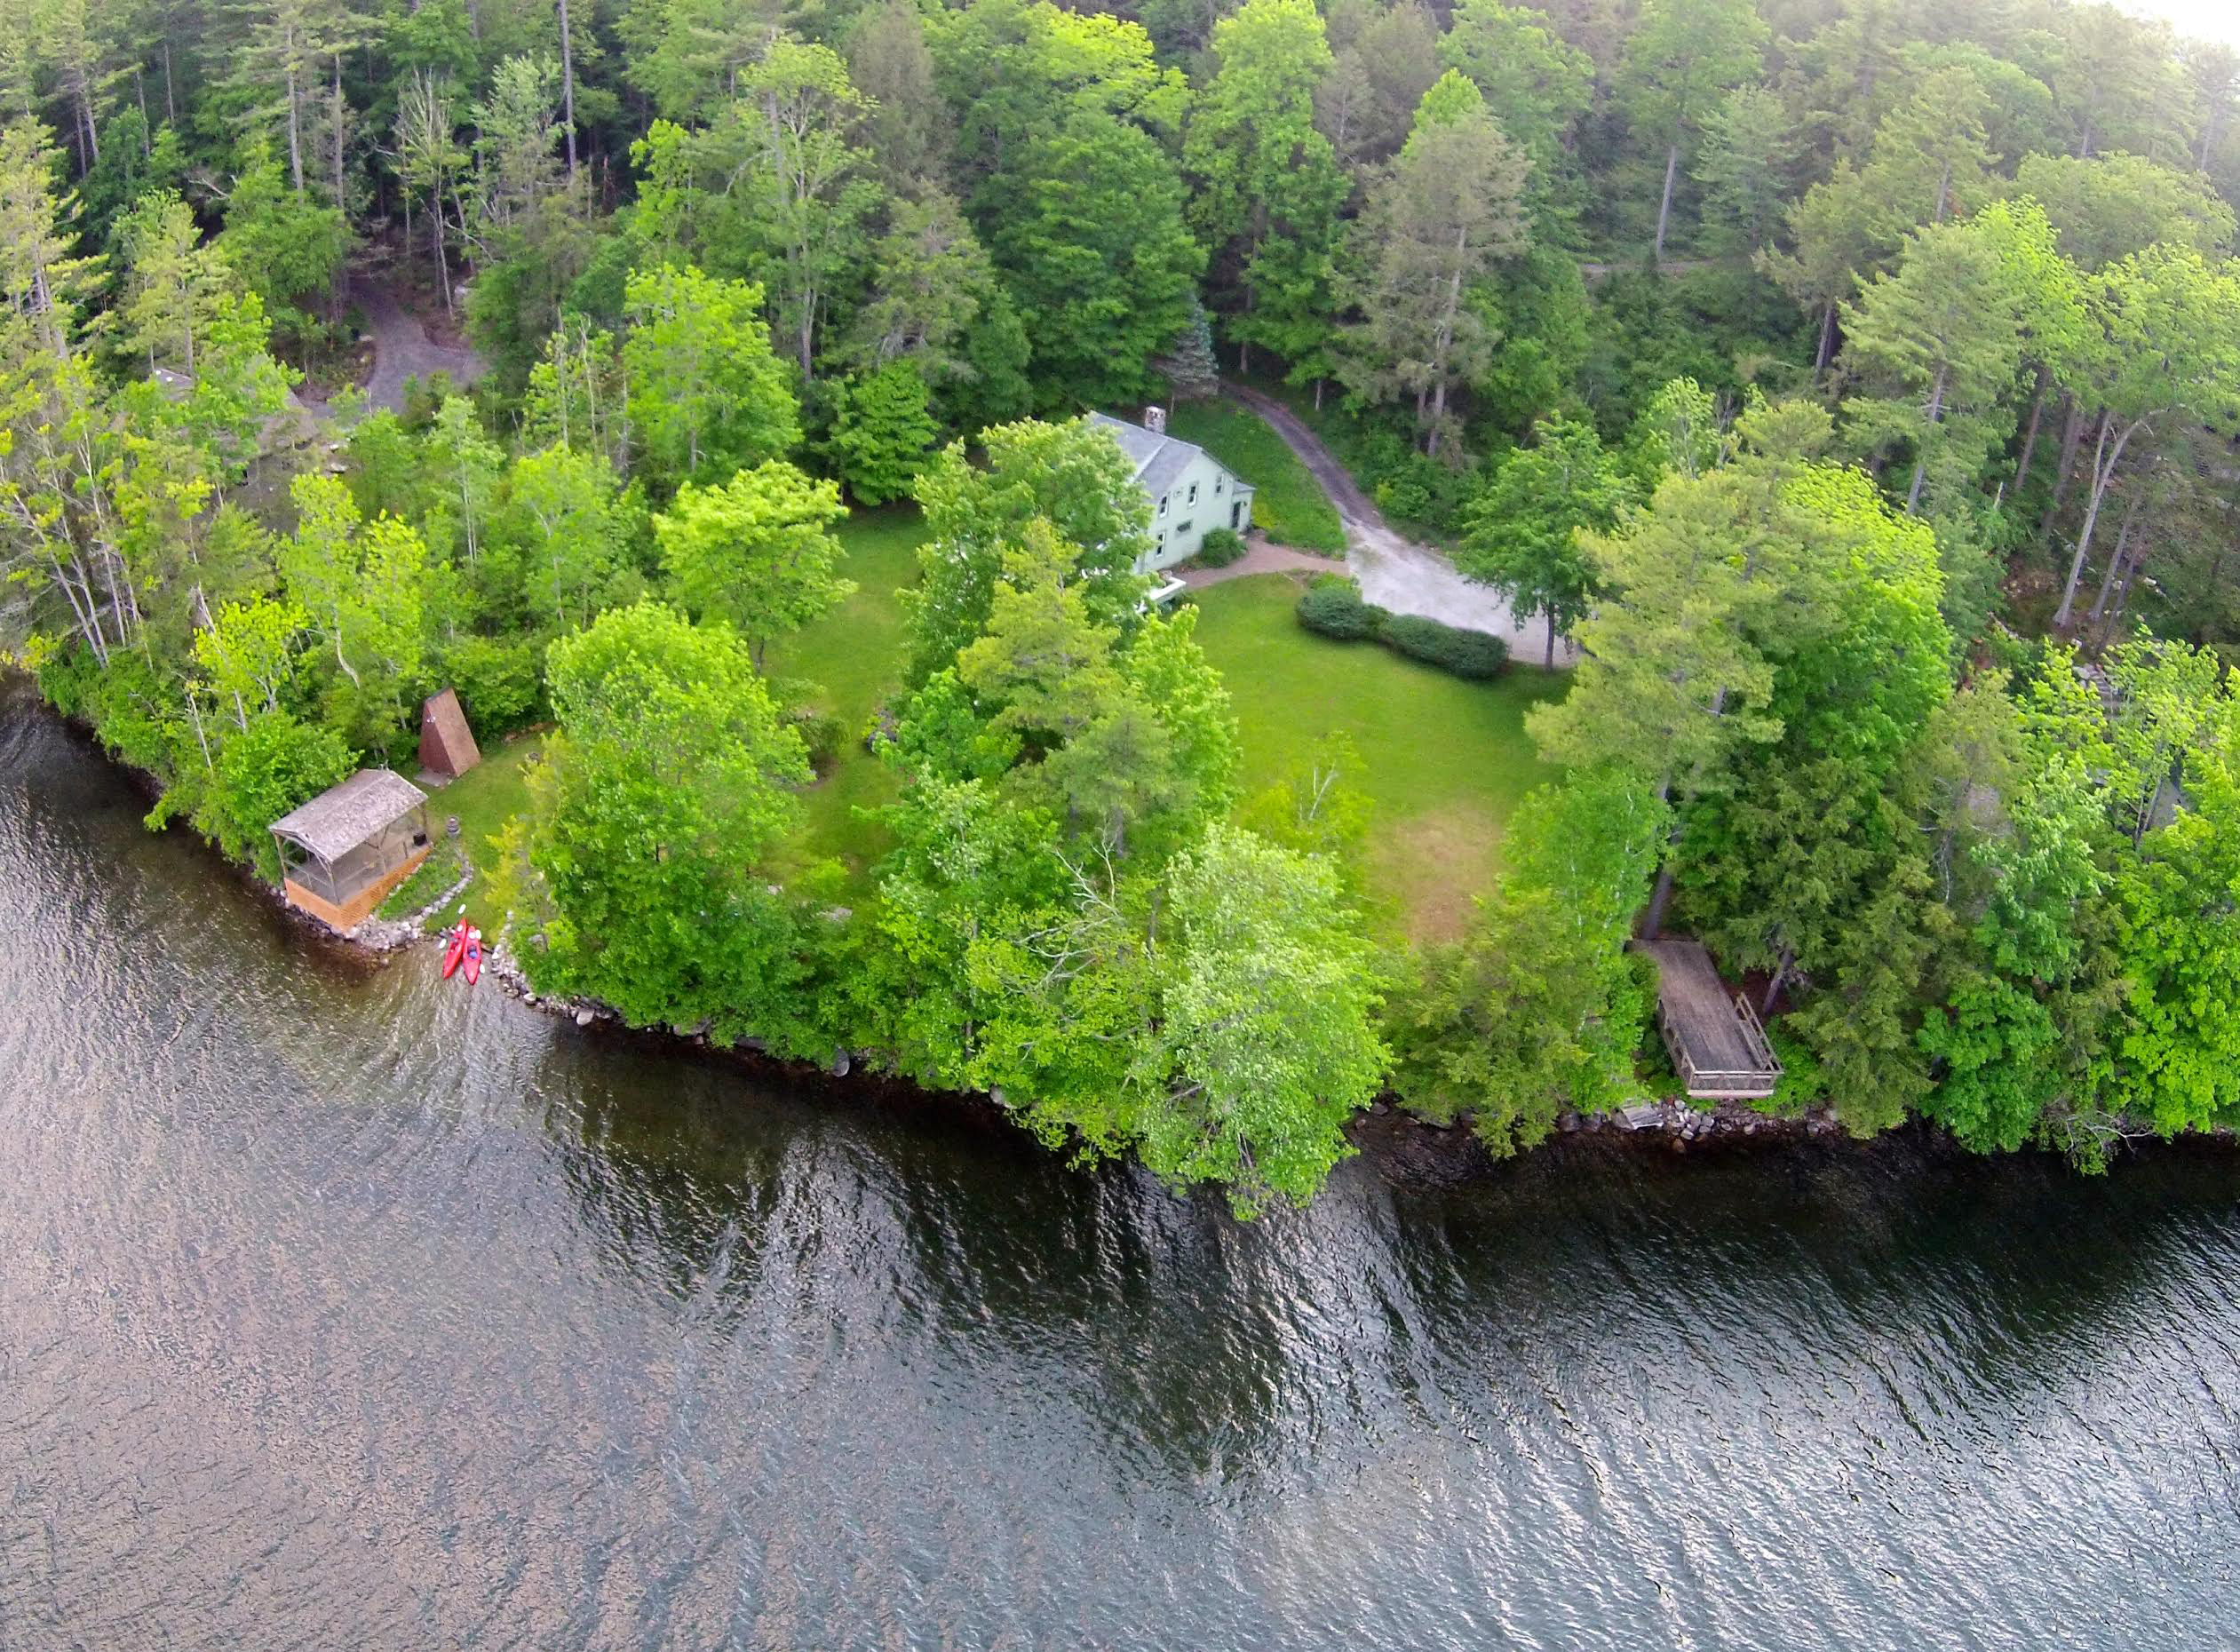 Property For Sale at 6 ACRE LAKEFRONT PARADISE ON STOCKBRIDGE BOWL W/ 2 HOMES!